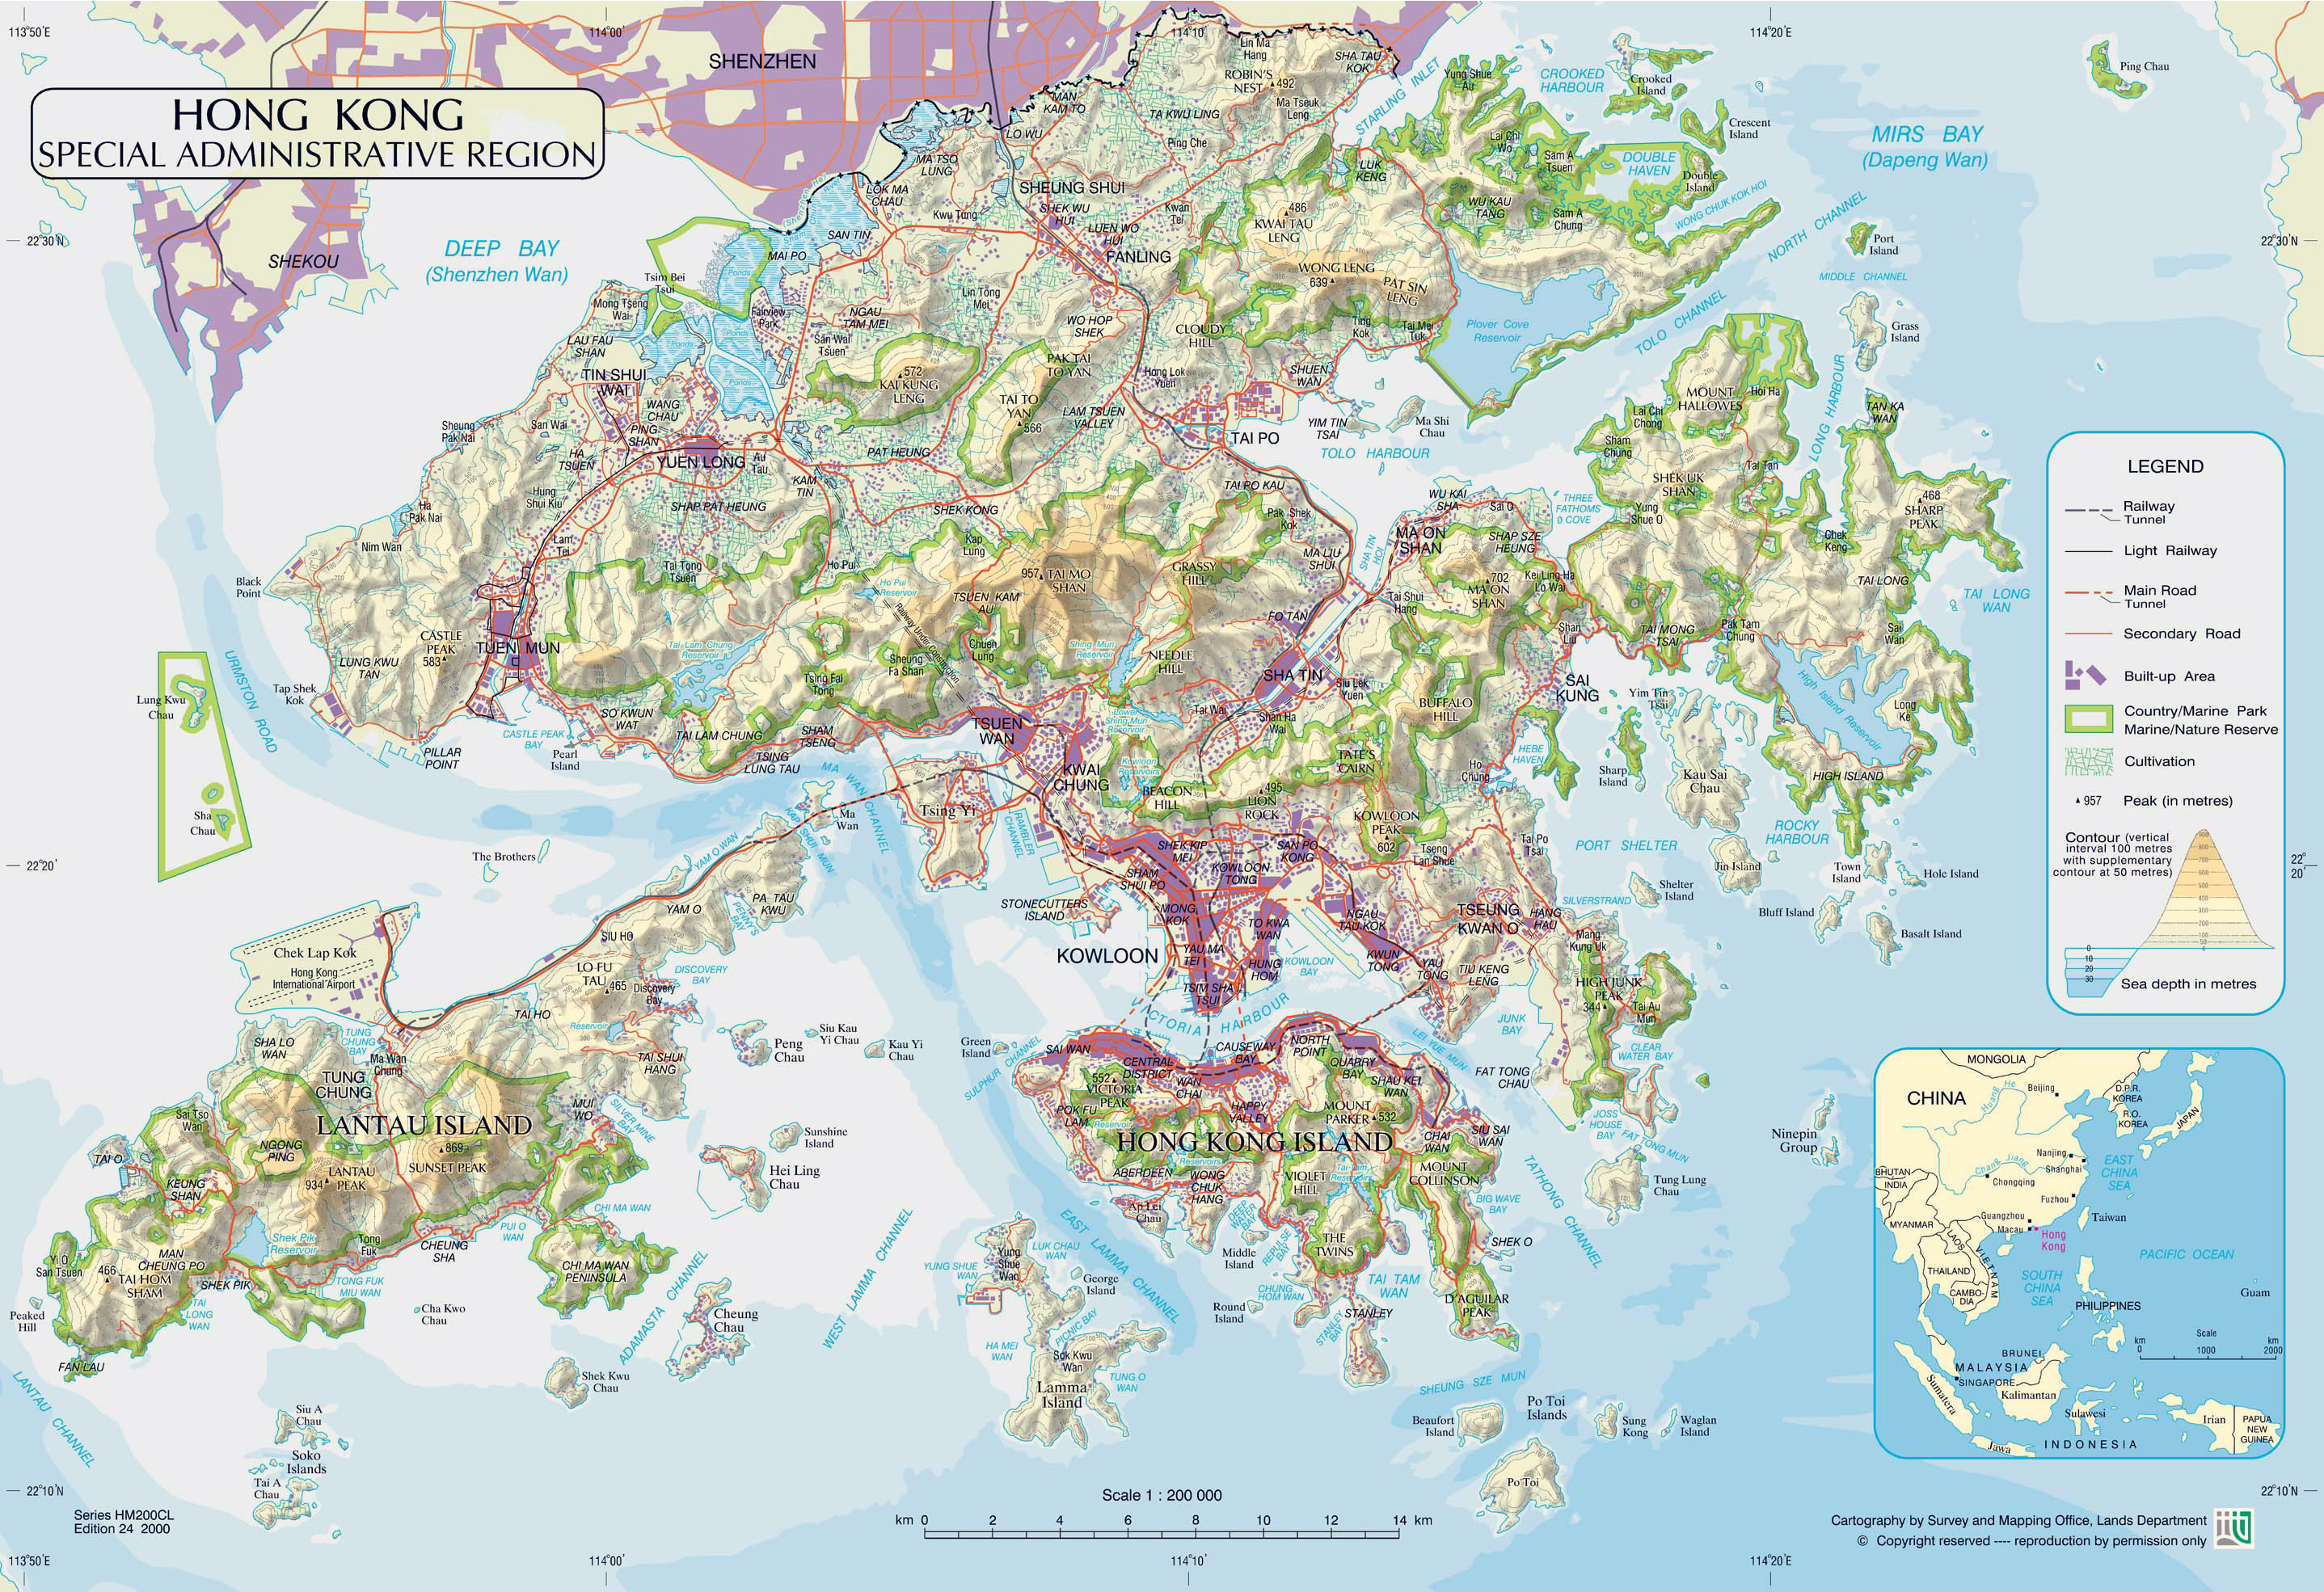 large-physical-map-of-hong-kong-with-roads-railroads-relief-and-parks